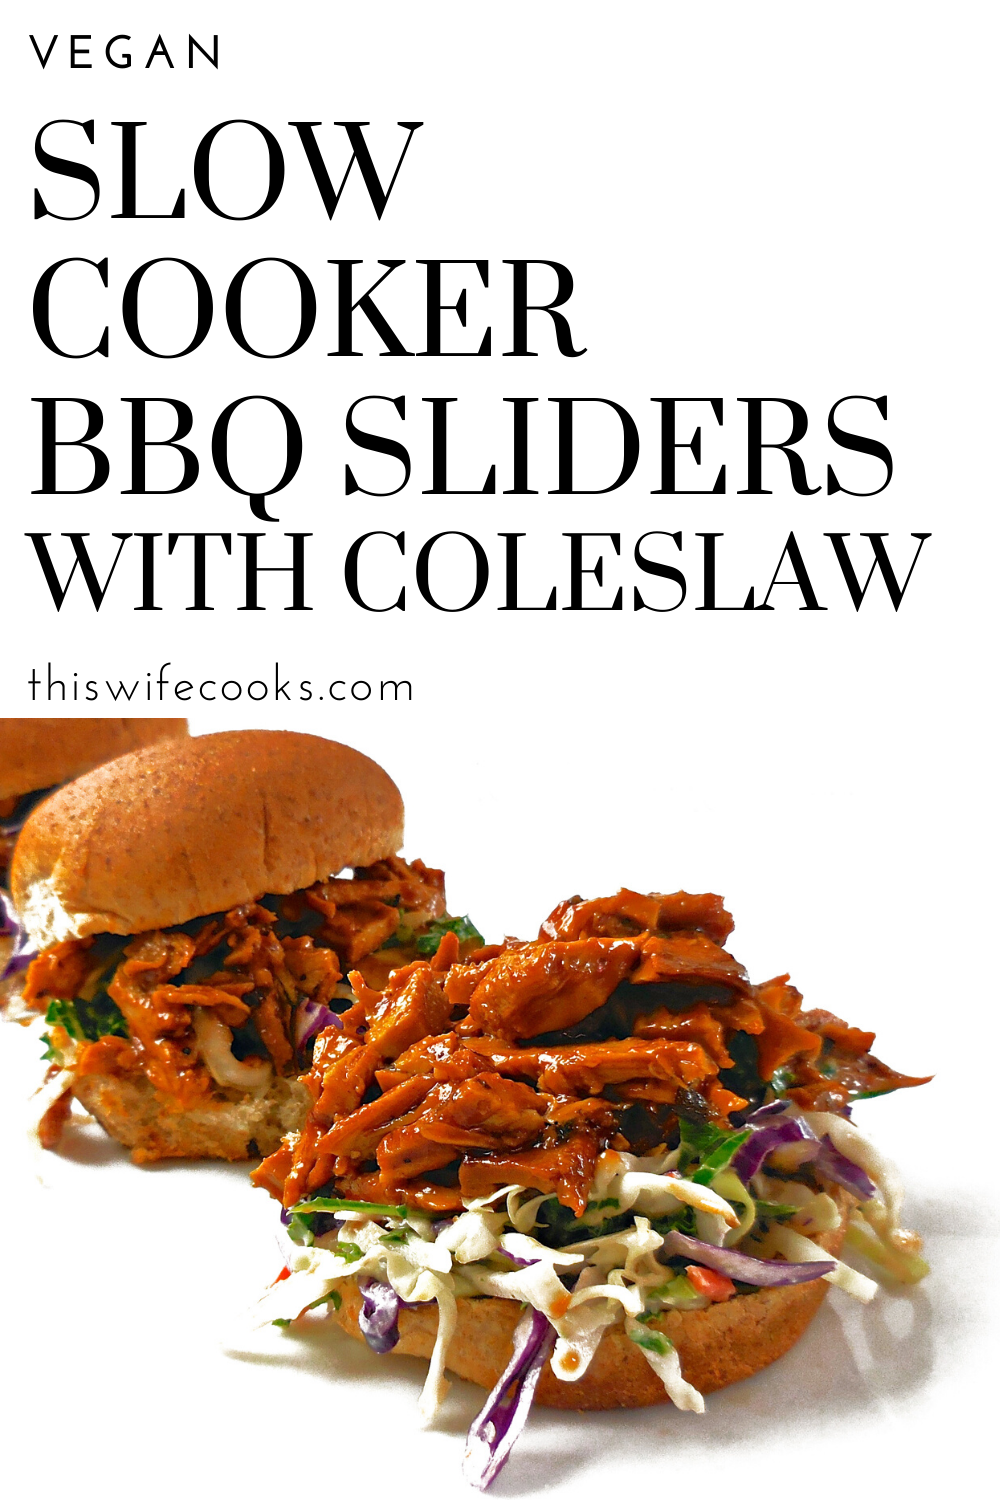 Vegan Slow Cooker BBQ Sliders via @thiswifecooks